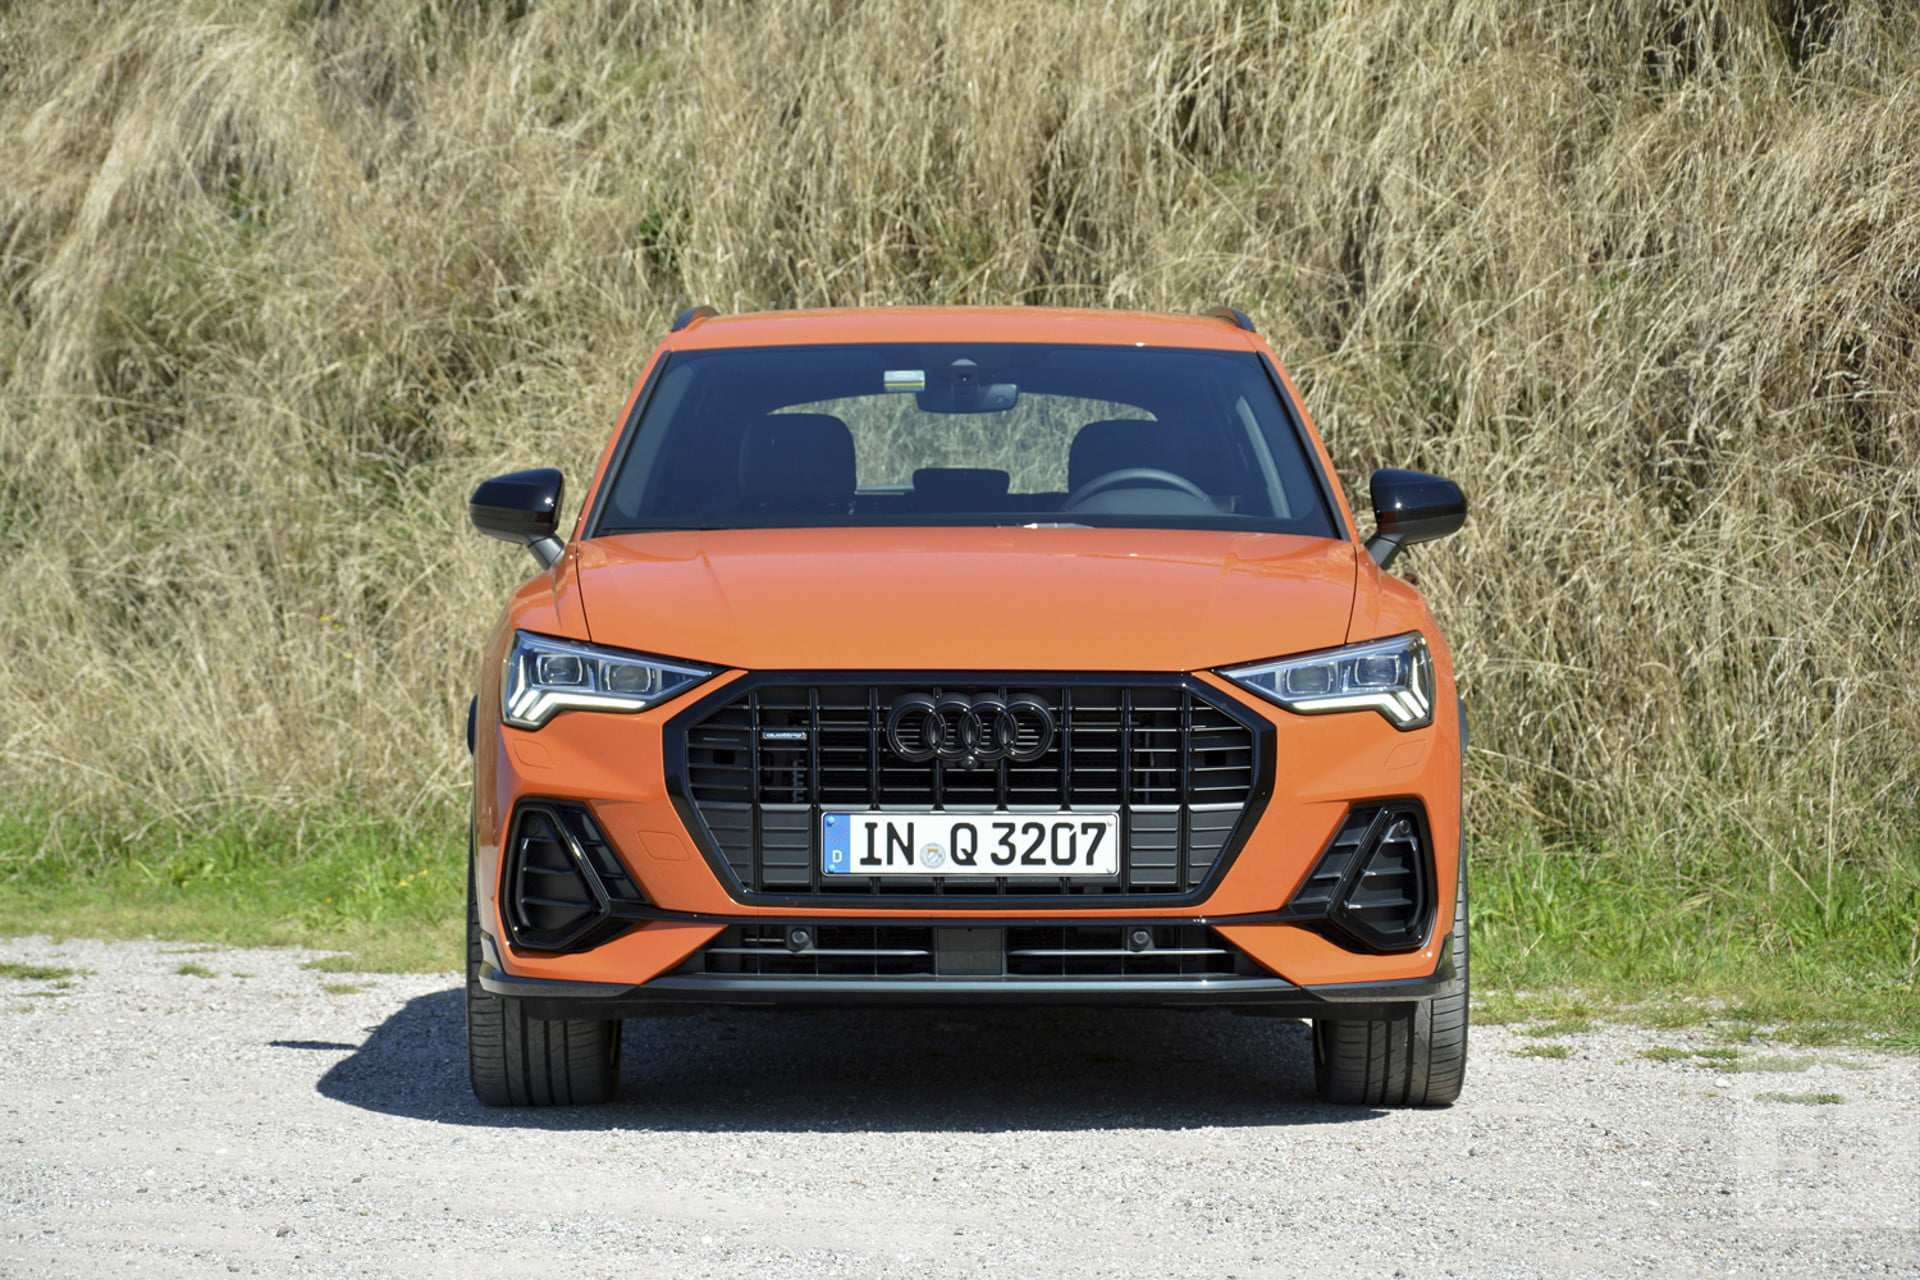 68 Great 2019 Audi Q3 Dimensions Specs and Review by 2019 Audi Q3 Dimensions